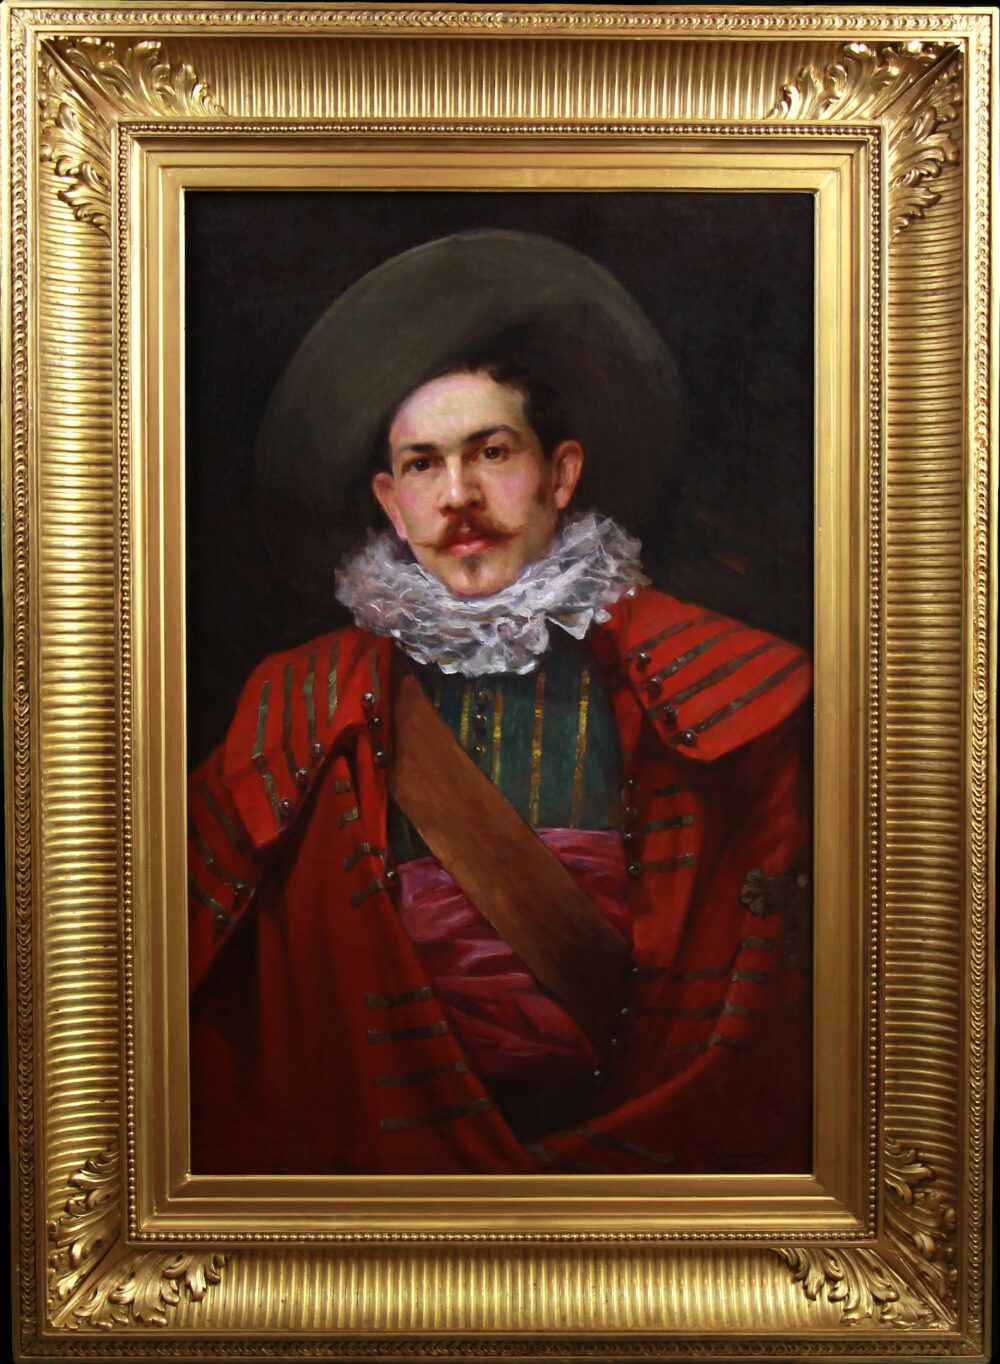 portrait of a musketeer by Monartsgallery